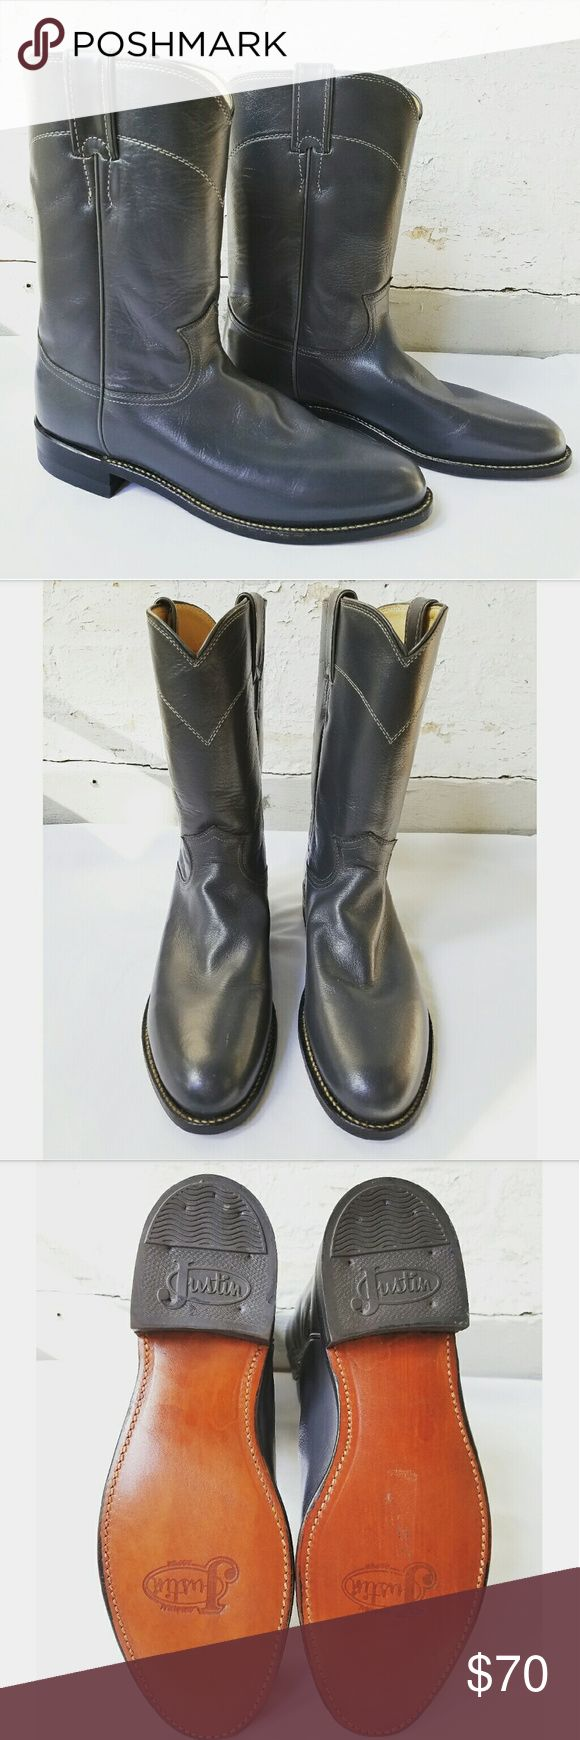 """Gorgeous Vintage Gray Justin Roper Boots Never worn!!! Size 8.5B 1.25"""" heel Leather sole and rubber heel Justin Boots Shoes Heeled Boots"""